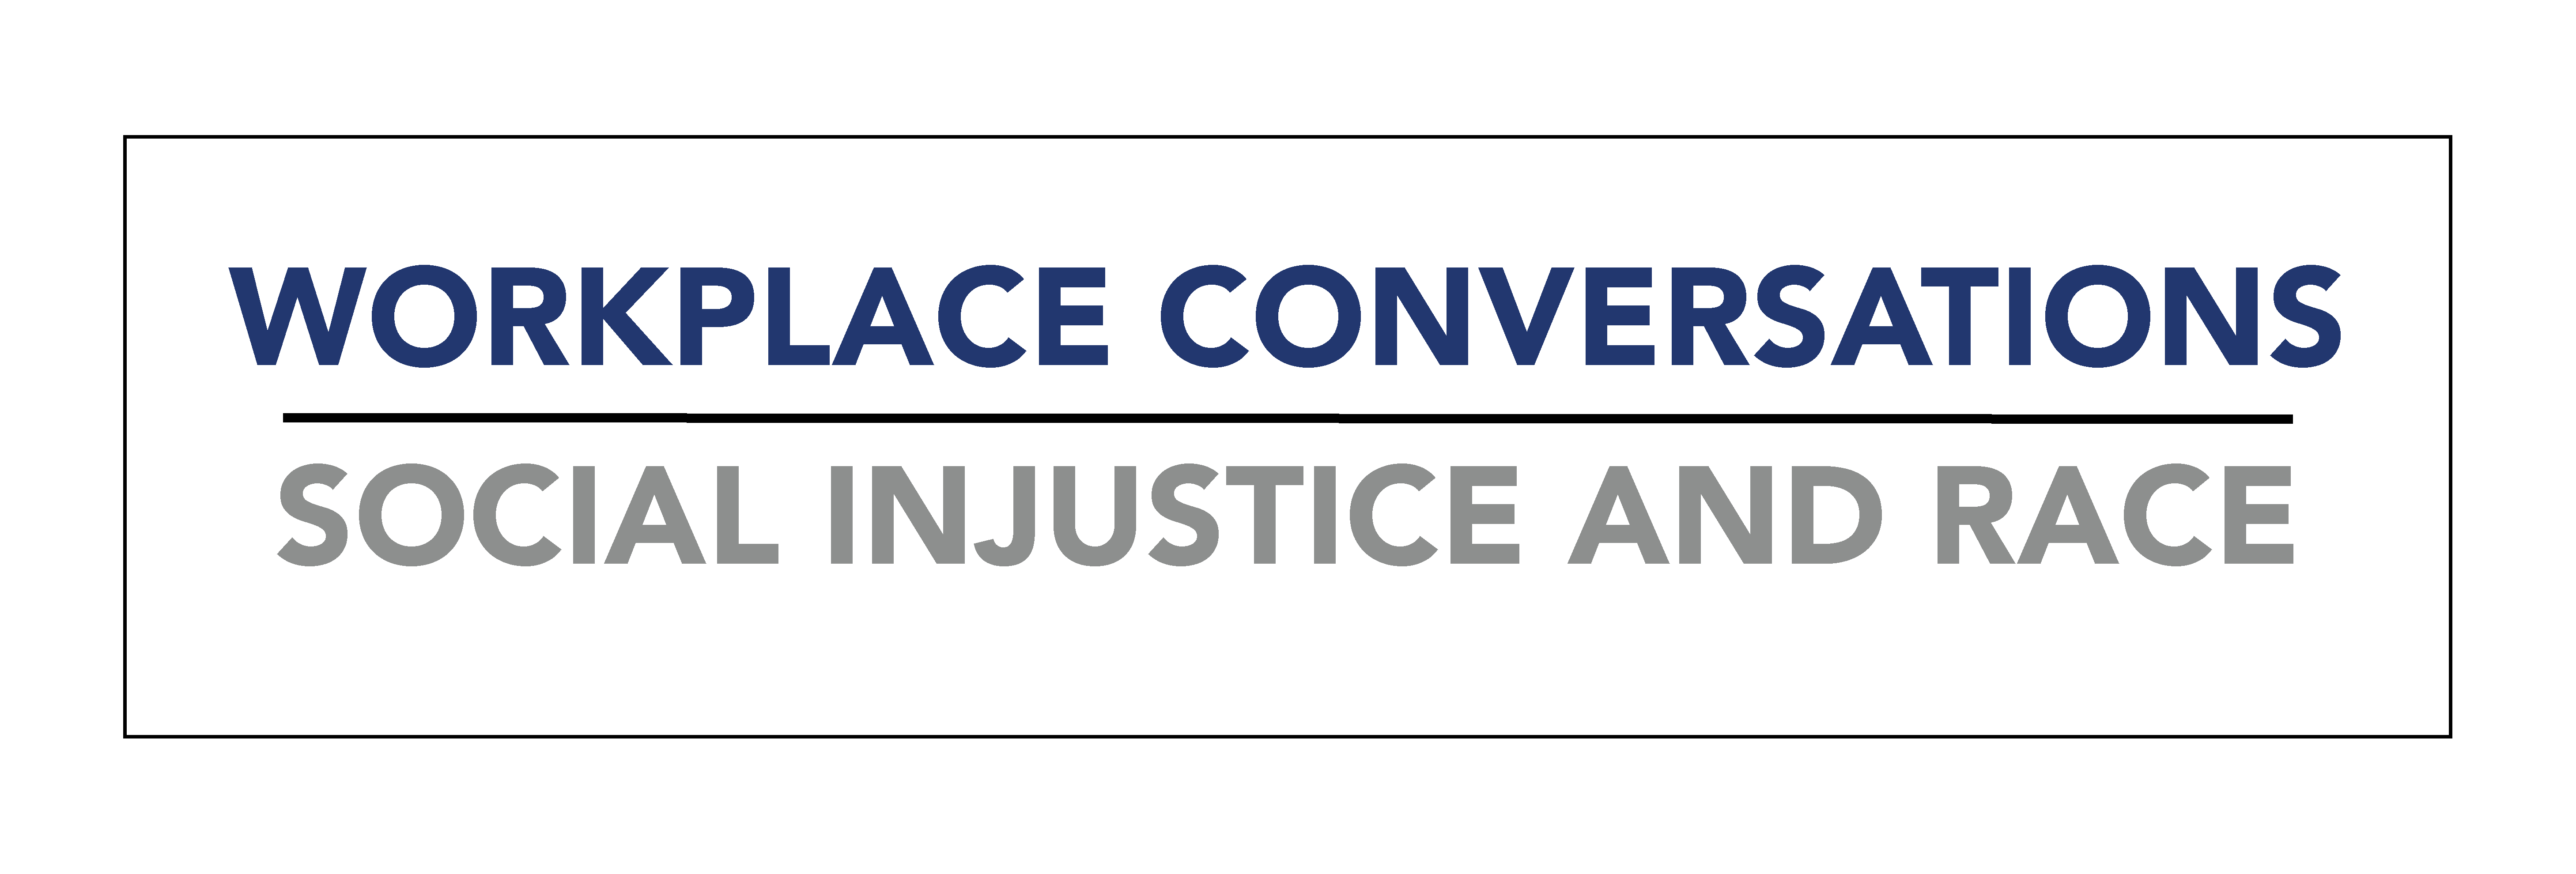 Workplace Conversations about Social Injustice and Race